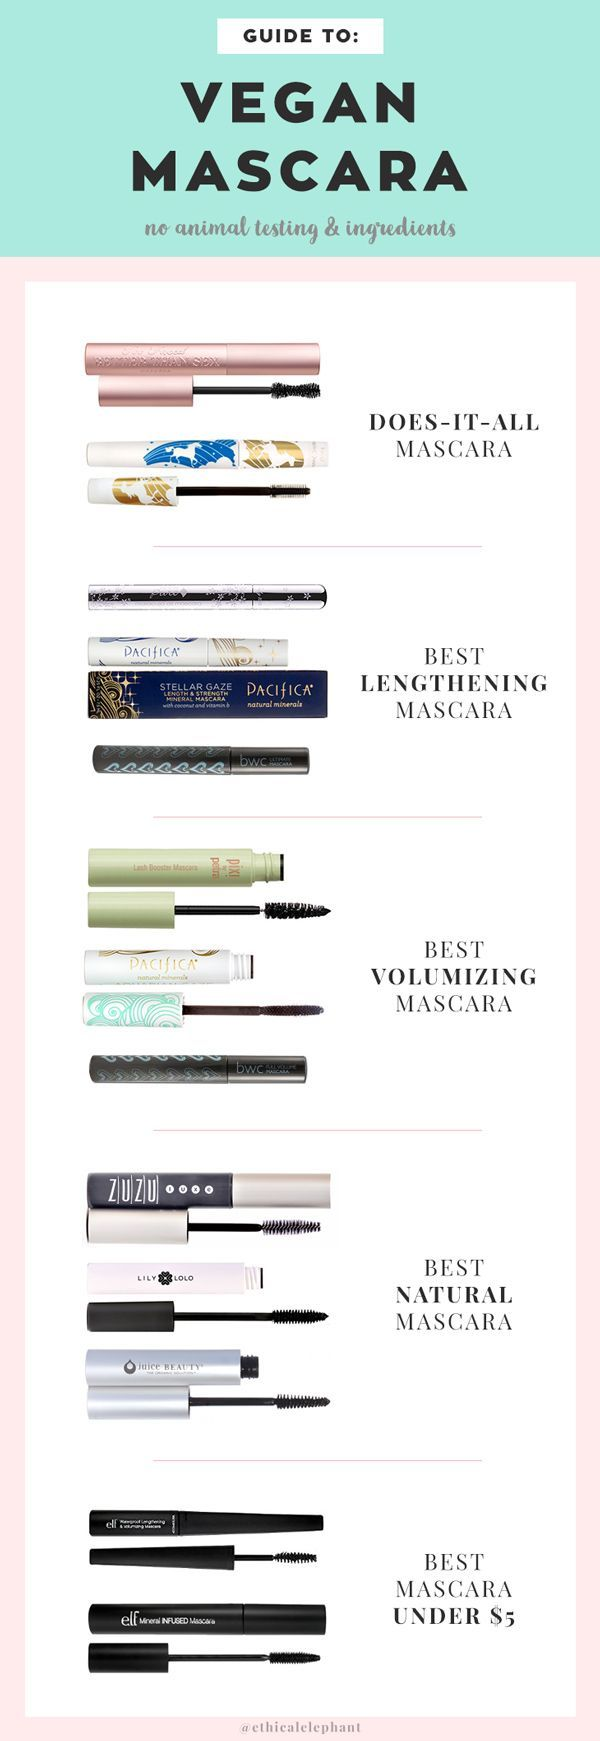 Ultimate Guide to Cruelty-Free and Vegan Mascara (No animal testing and ingredie...